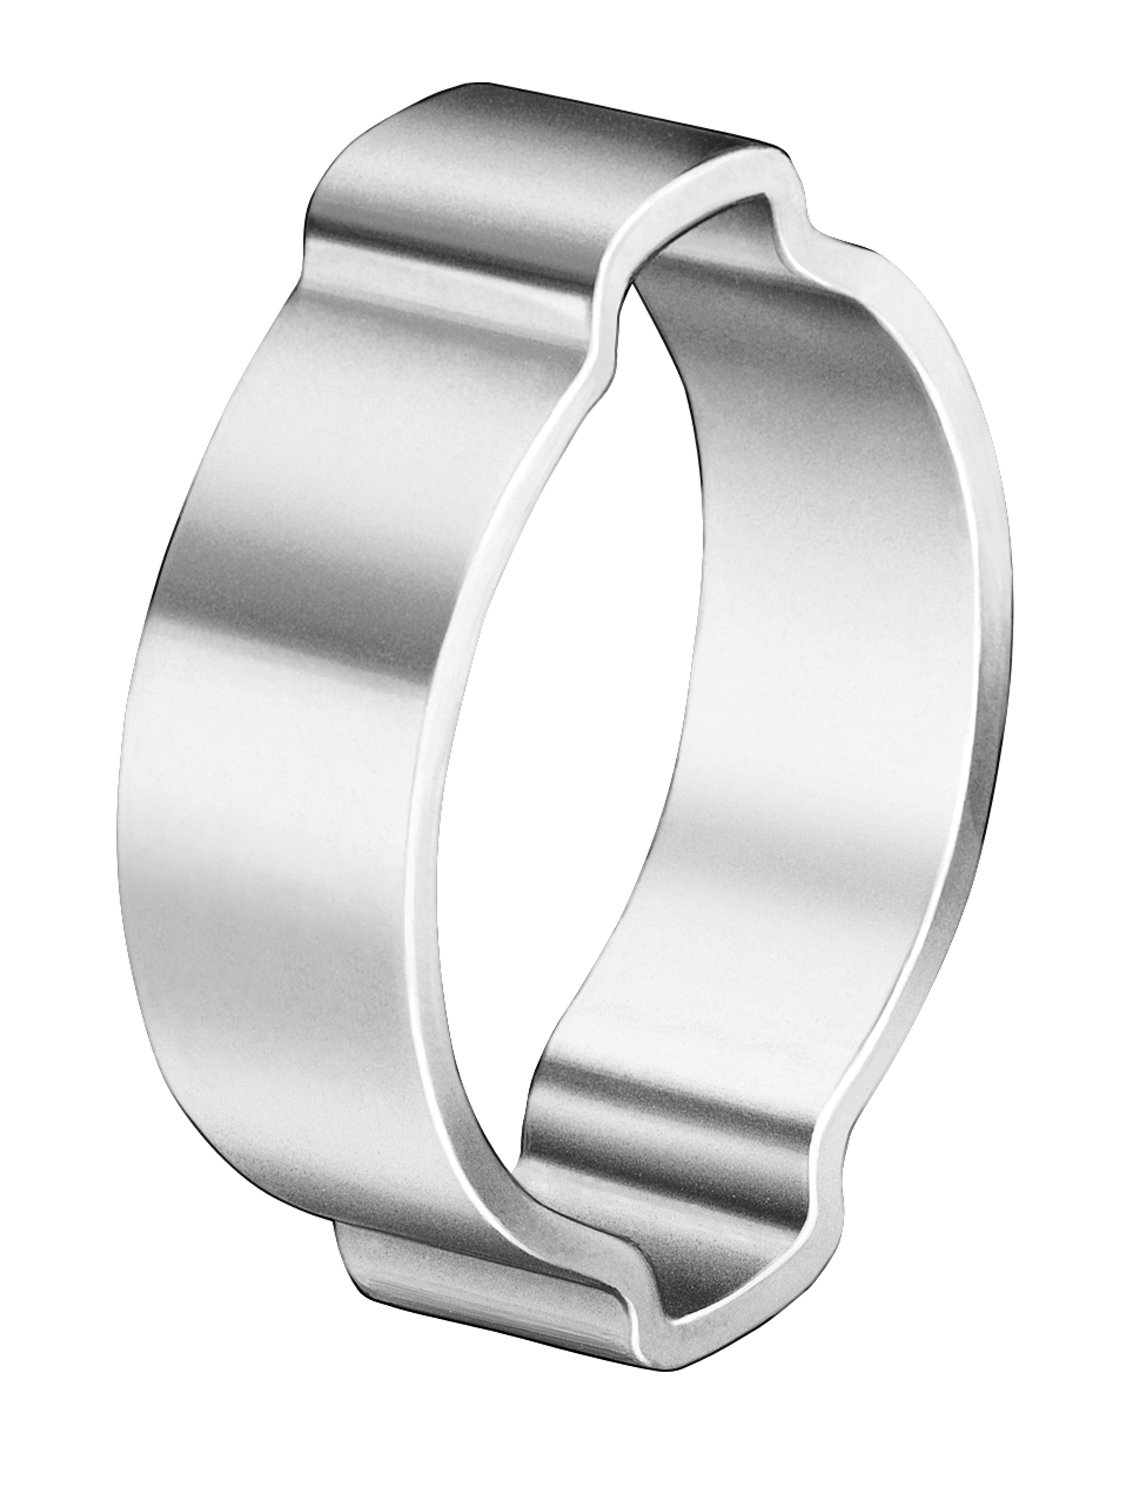 Oetiker 10100022 Zinc-Plated Steel Hose Clamp, Double Ear, Clamp ID Range 14 mm (Closed) - 17 mm (Open) (Pack of 100)